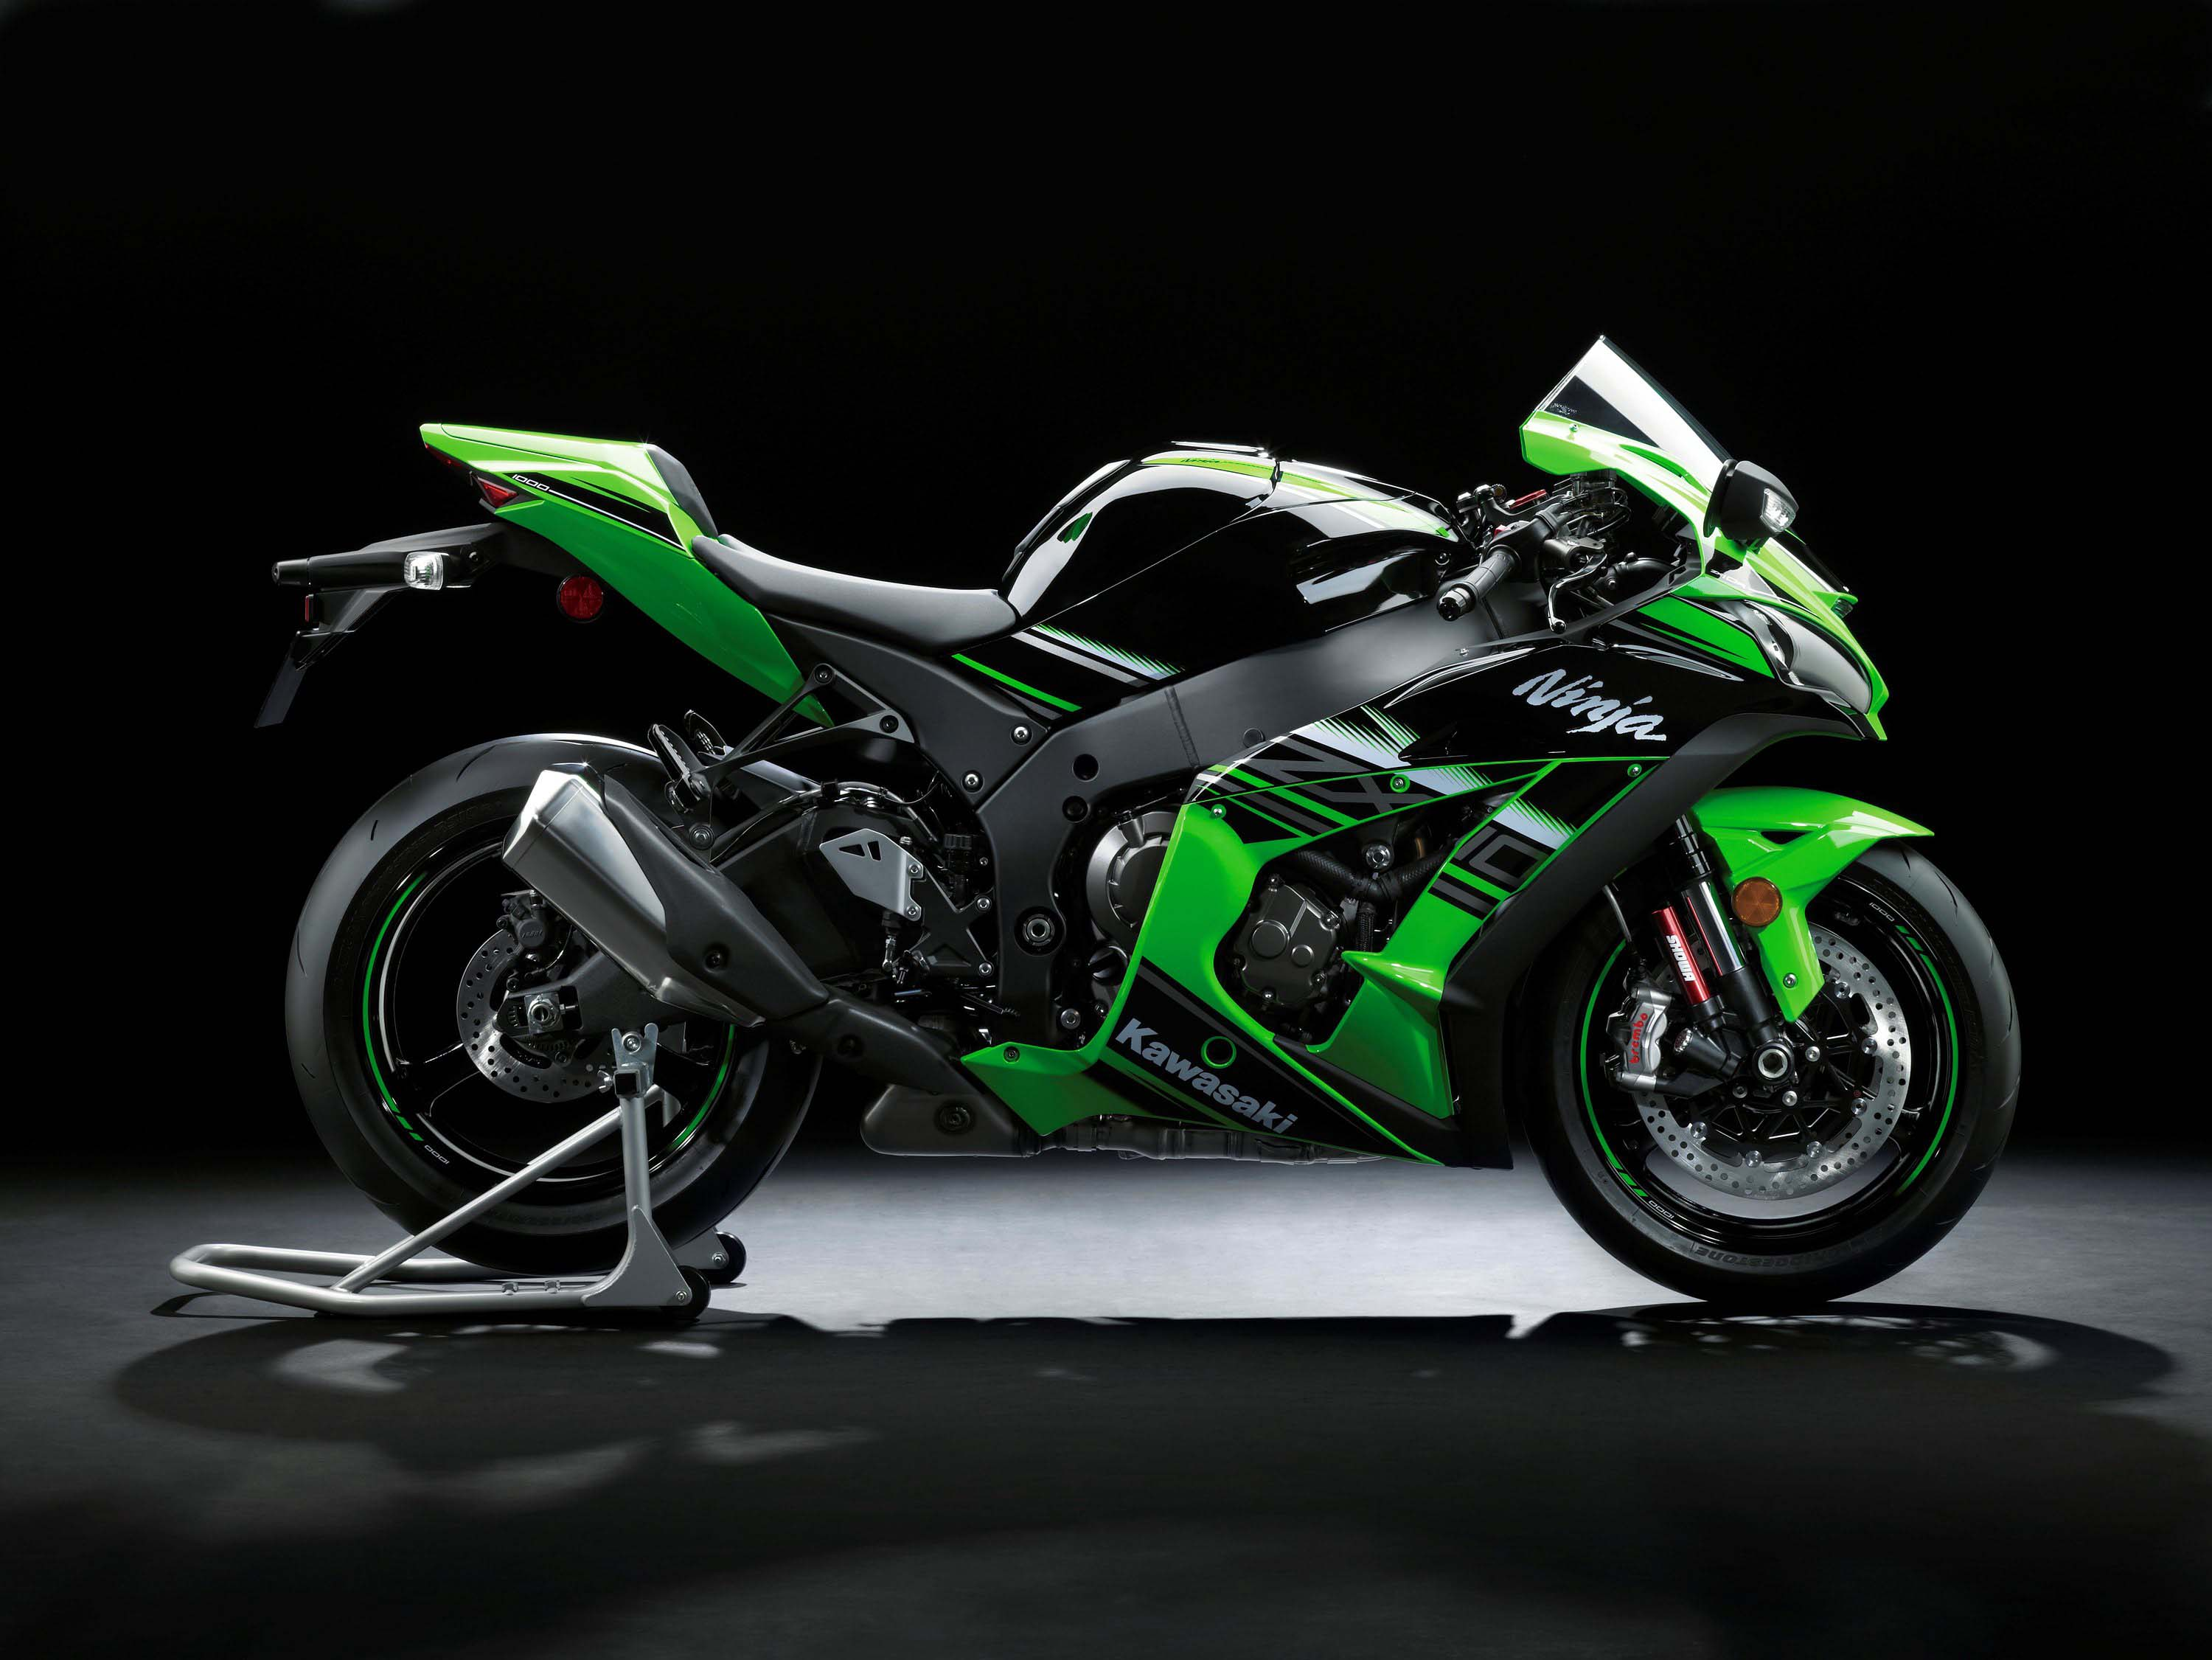 xxx kawasaki ninja zx 10r krt edition asphalt rubber. Black Bedroom Furniture Sets. Home Design Ideas